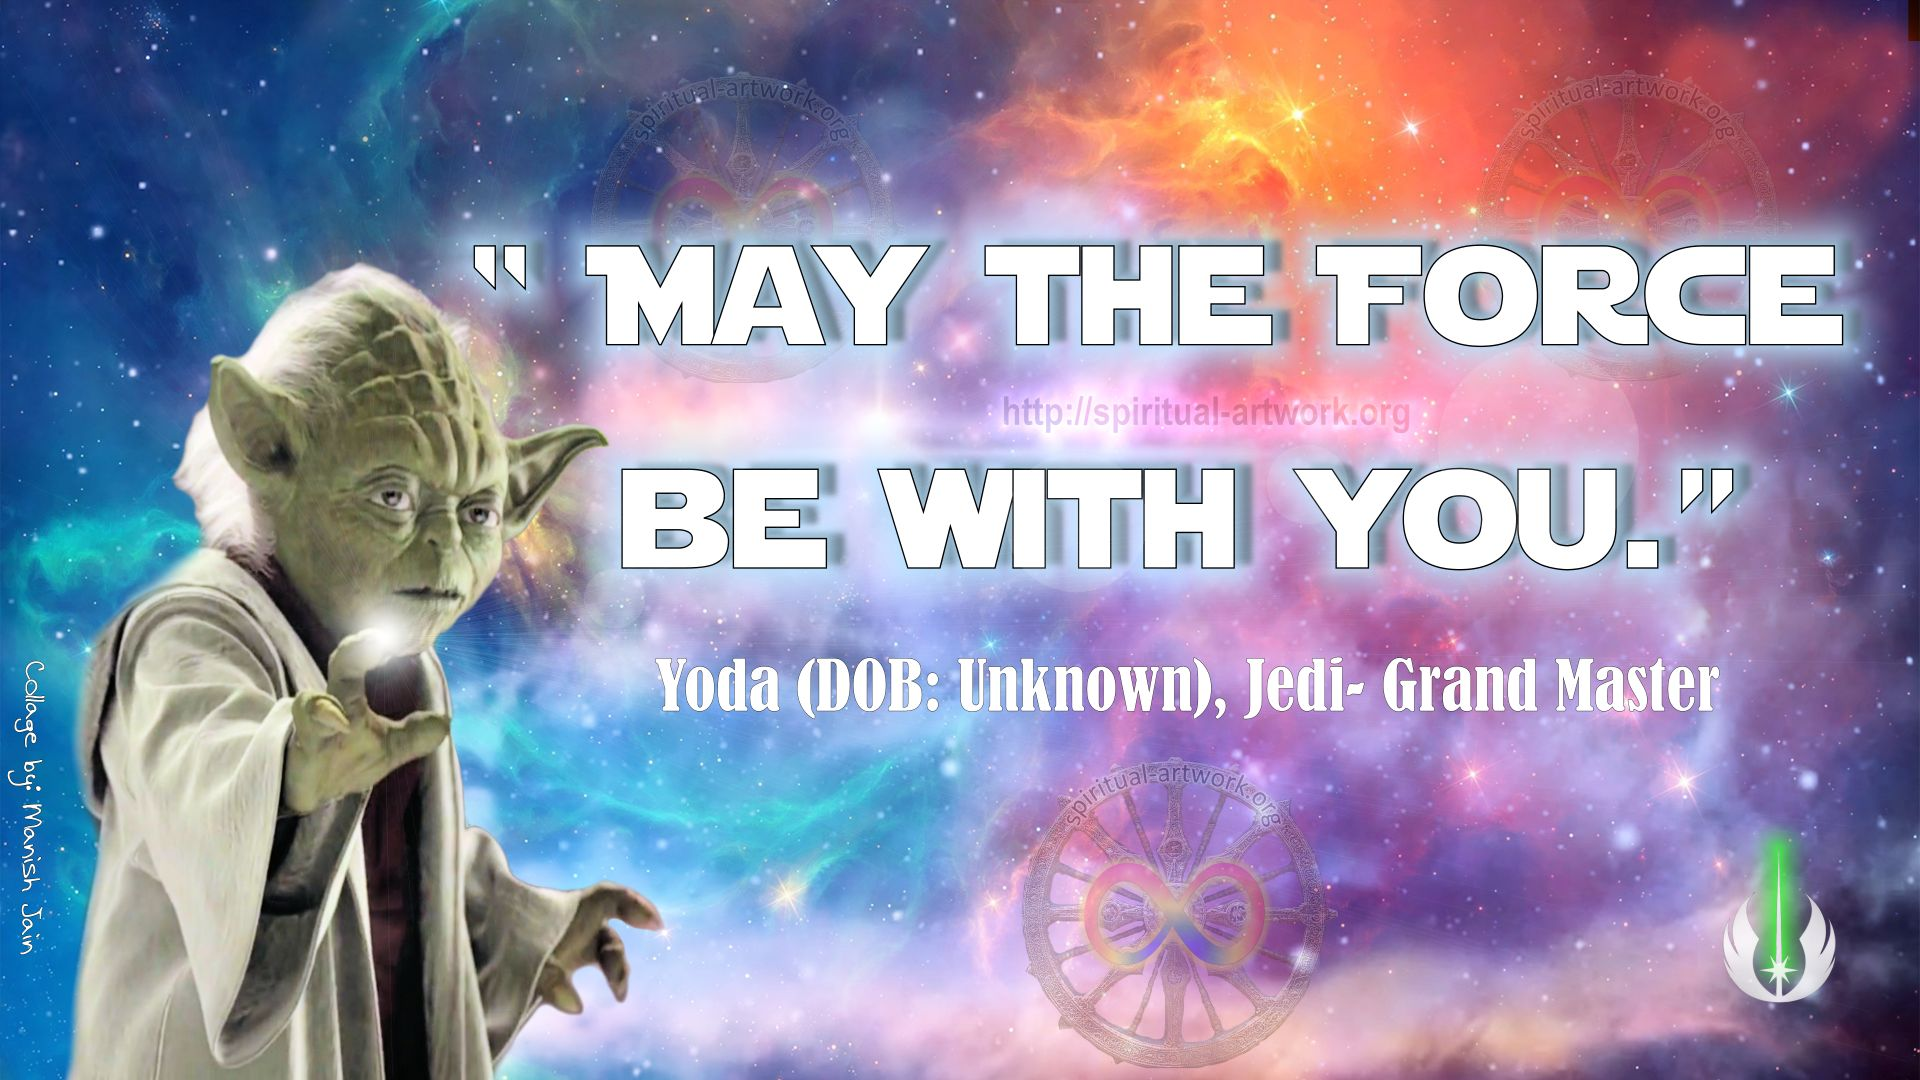 178.-Yoda-The-Grand-Master-Star-Wars-May-The-Force-Be-With-You